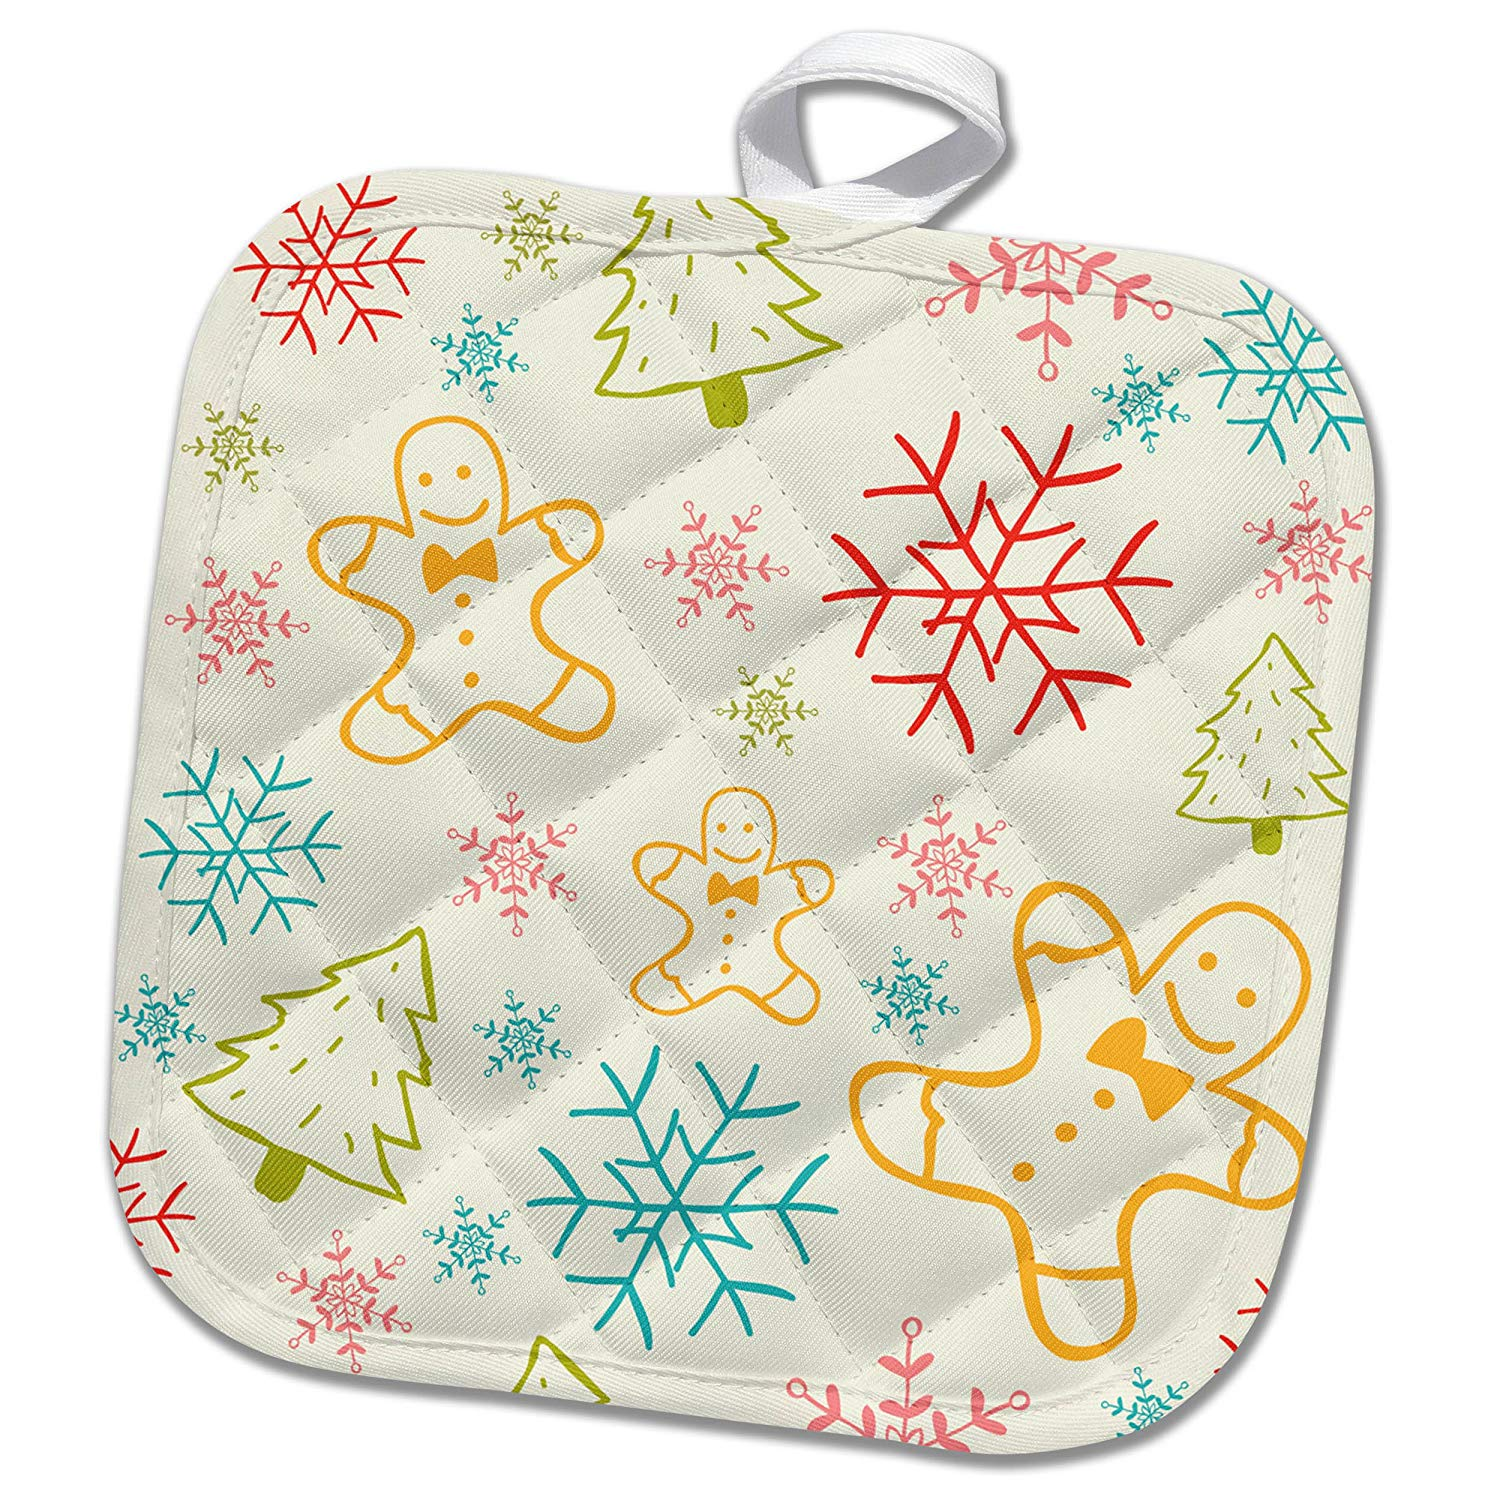 3993eabf8502 Buy 3dRose Anne Marie Baugh - Christmas - Cute Christmas Floral and ...